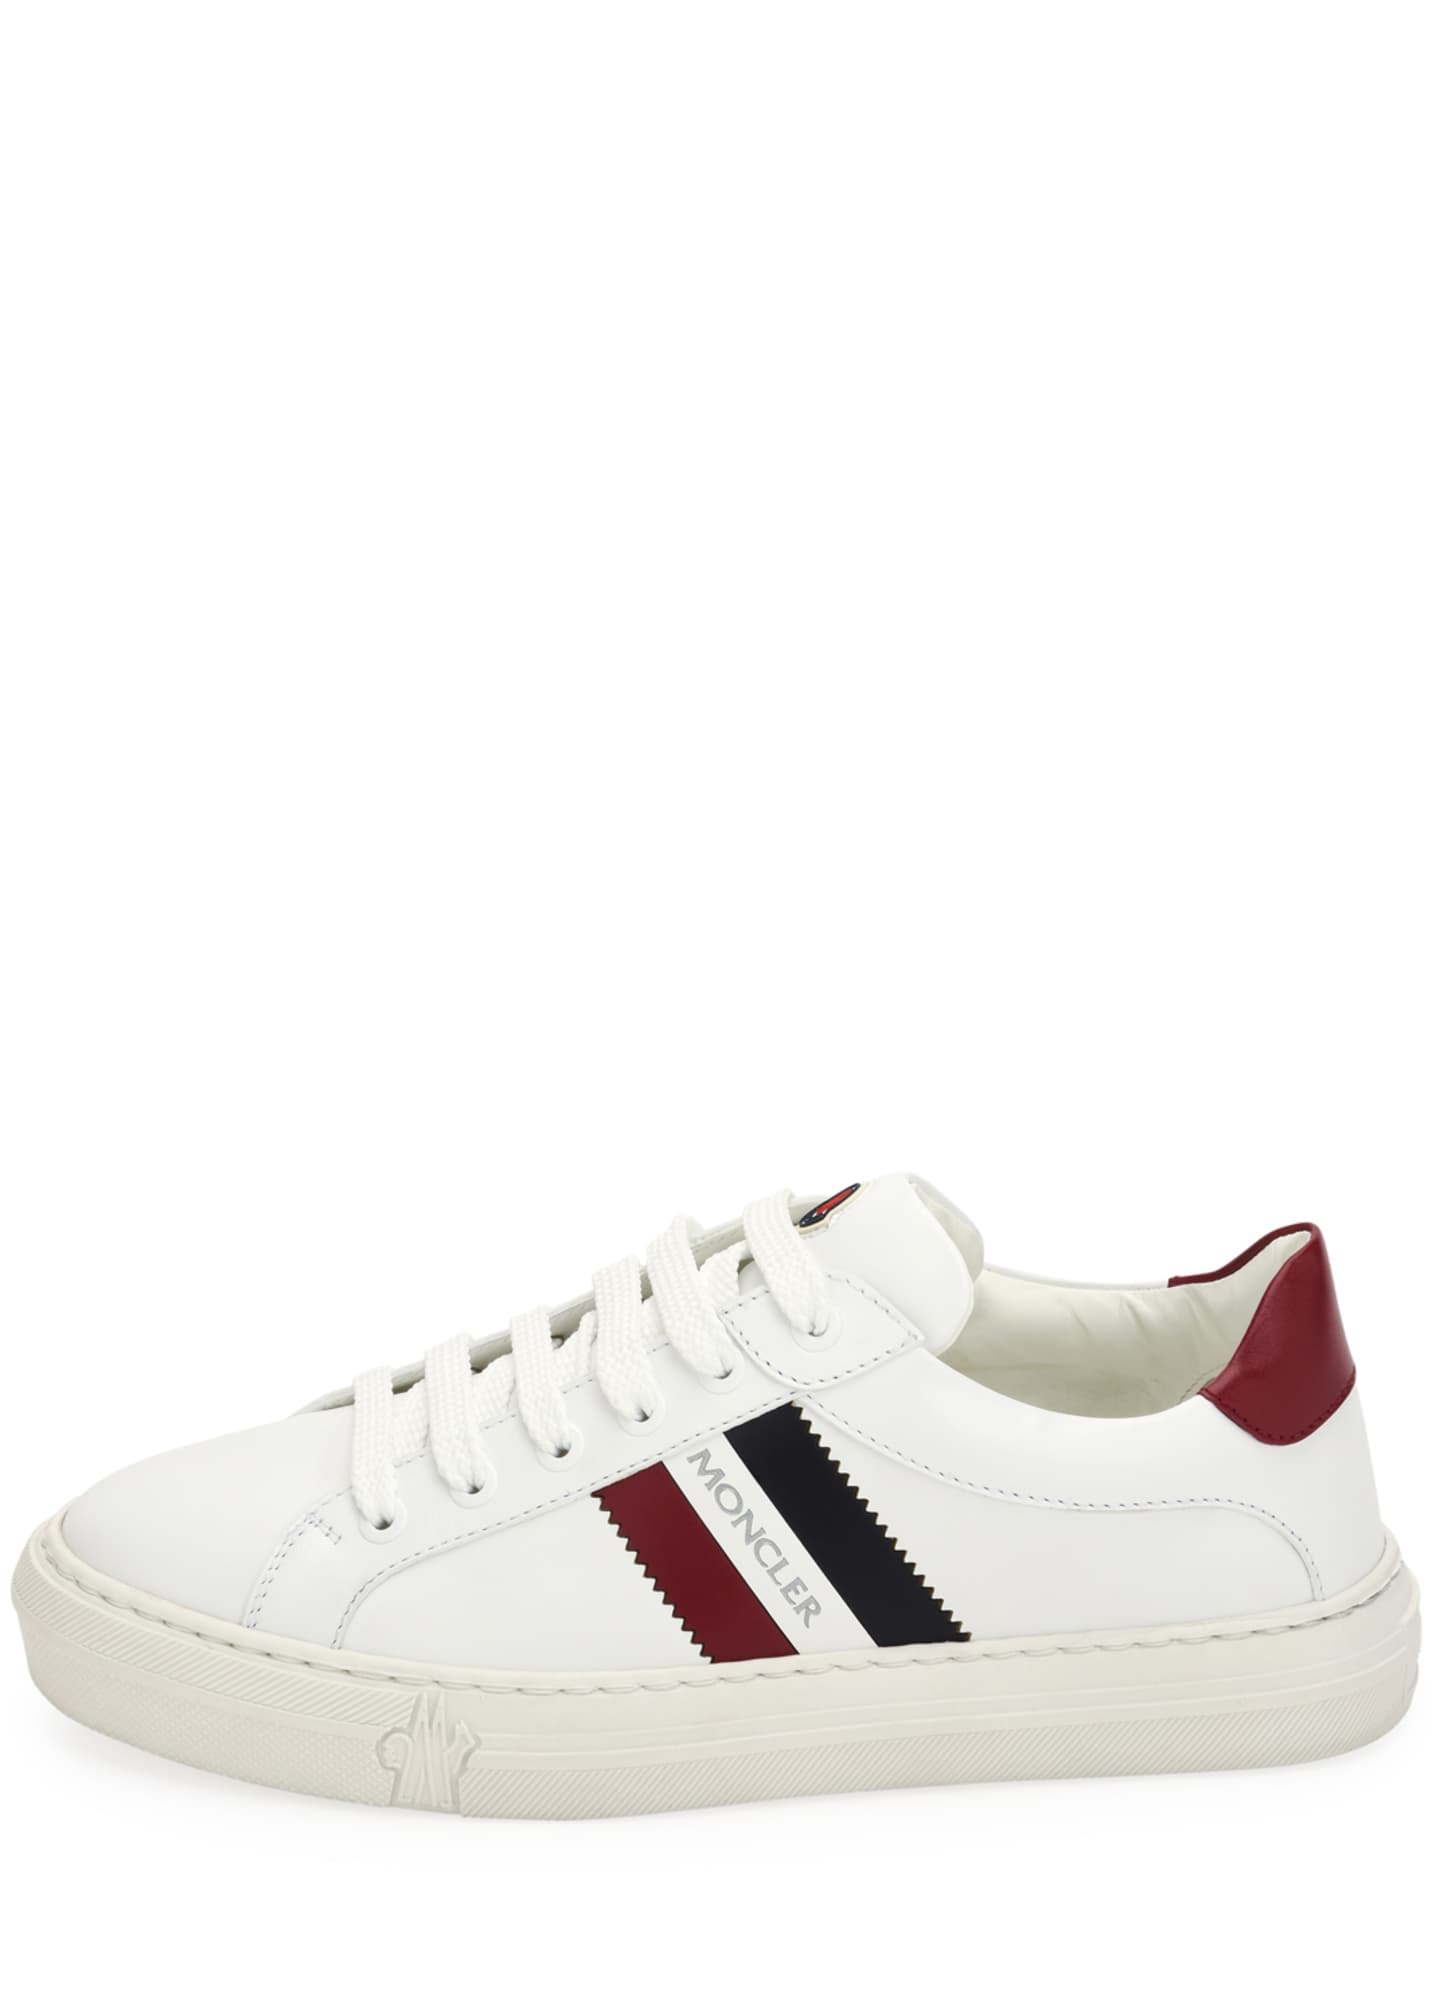 Image 2 of 3: Ariel Scarpa Leather Sneakers